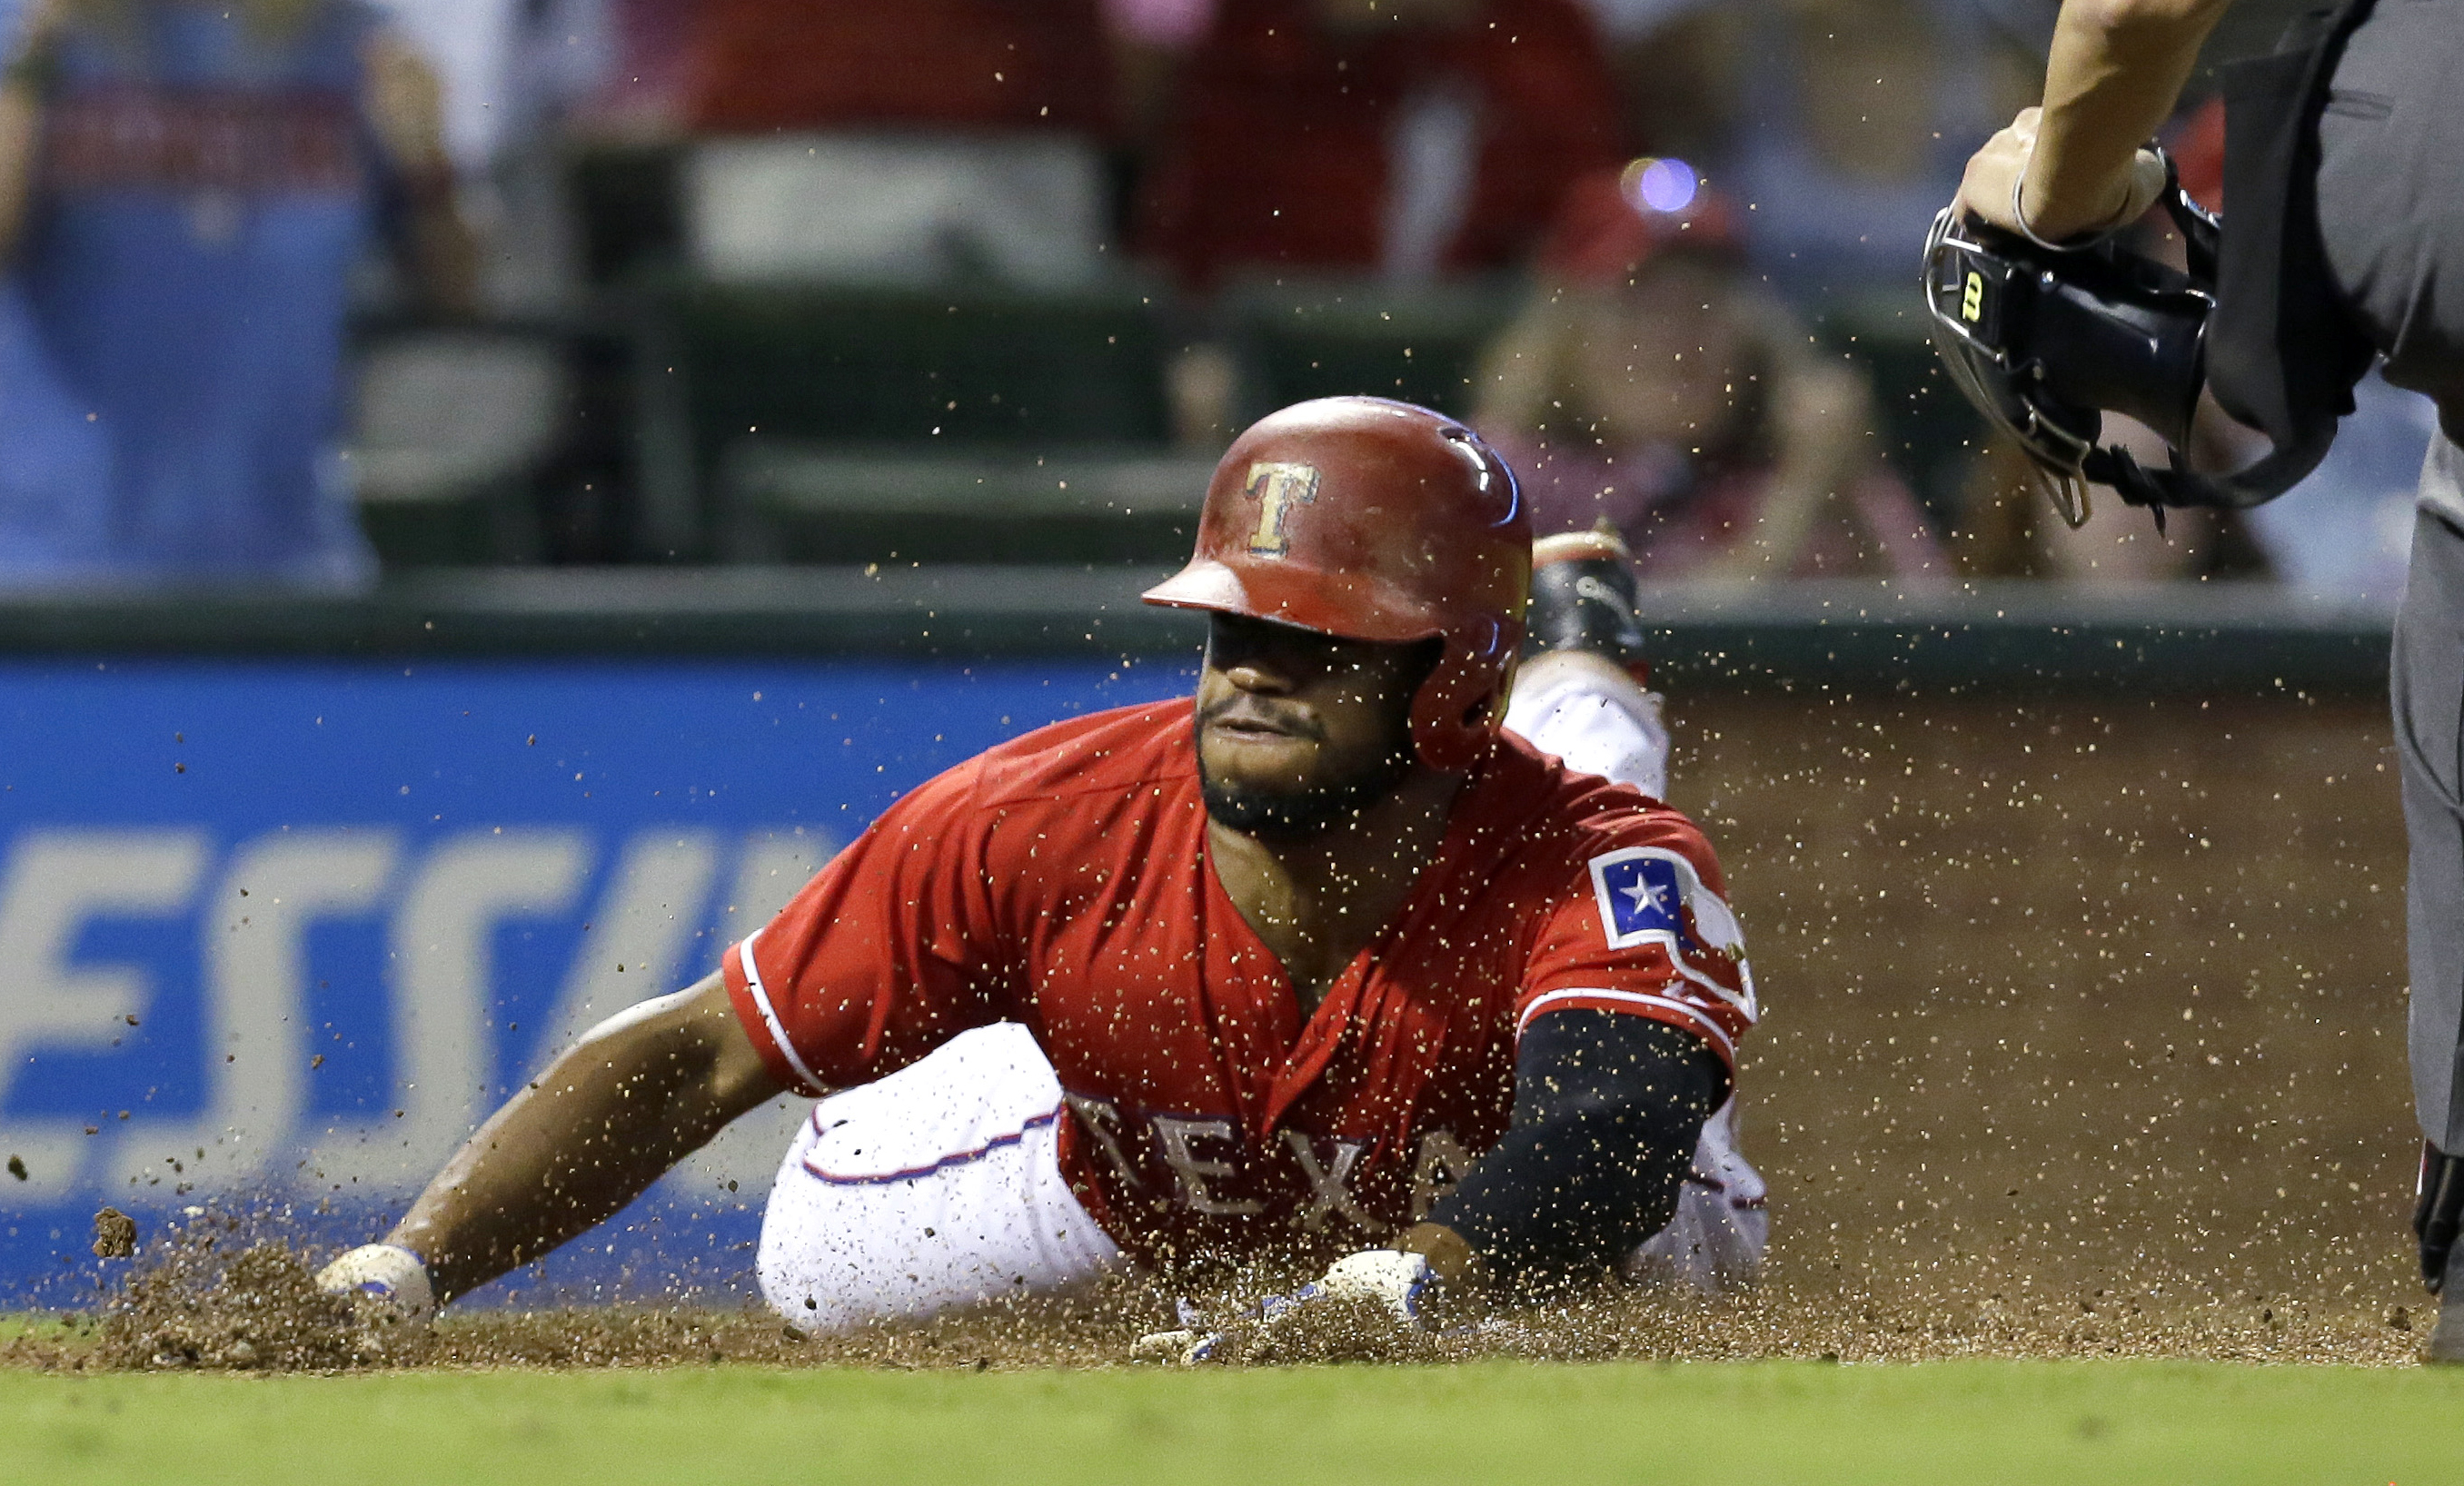 Texas Rangers' Delino DeShields slides into home plate to score on a double by teammate Adrian Beltre during the fourth inning of a baseball game against the Seattle Mariners in Arlington, Texas, Saturday, Sept. 19, 2015. (AP Photo/LM Otero)